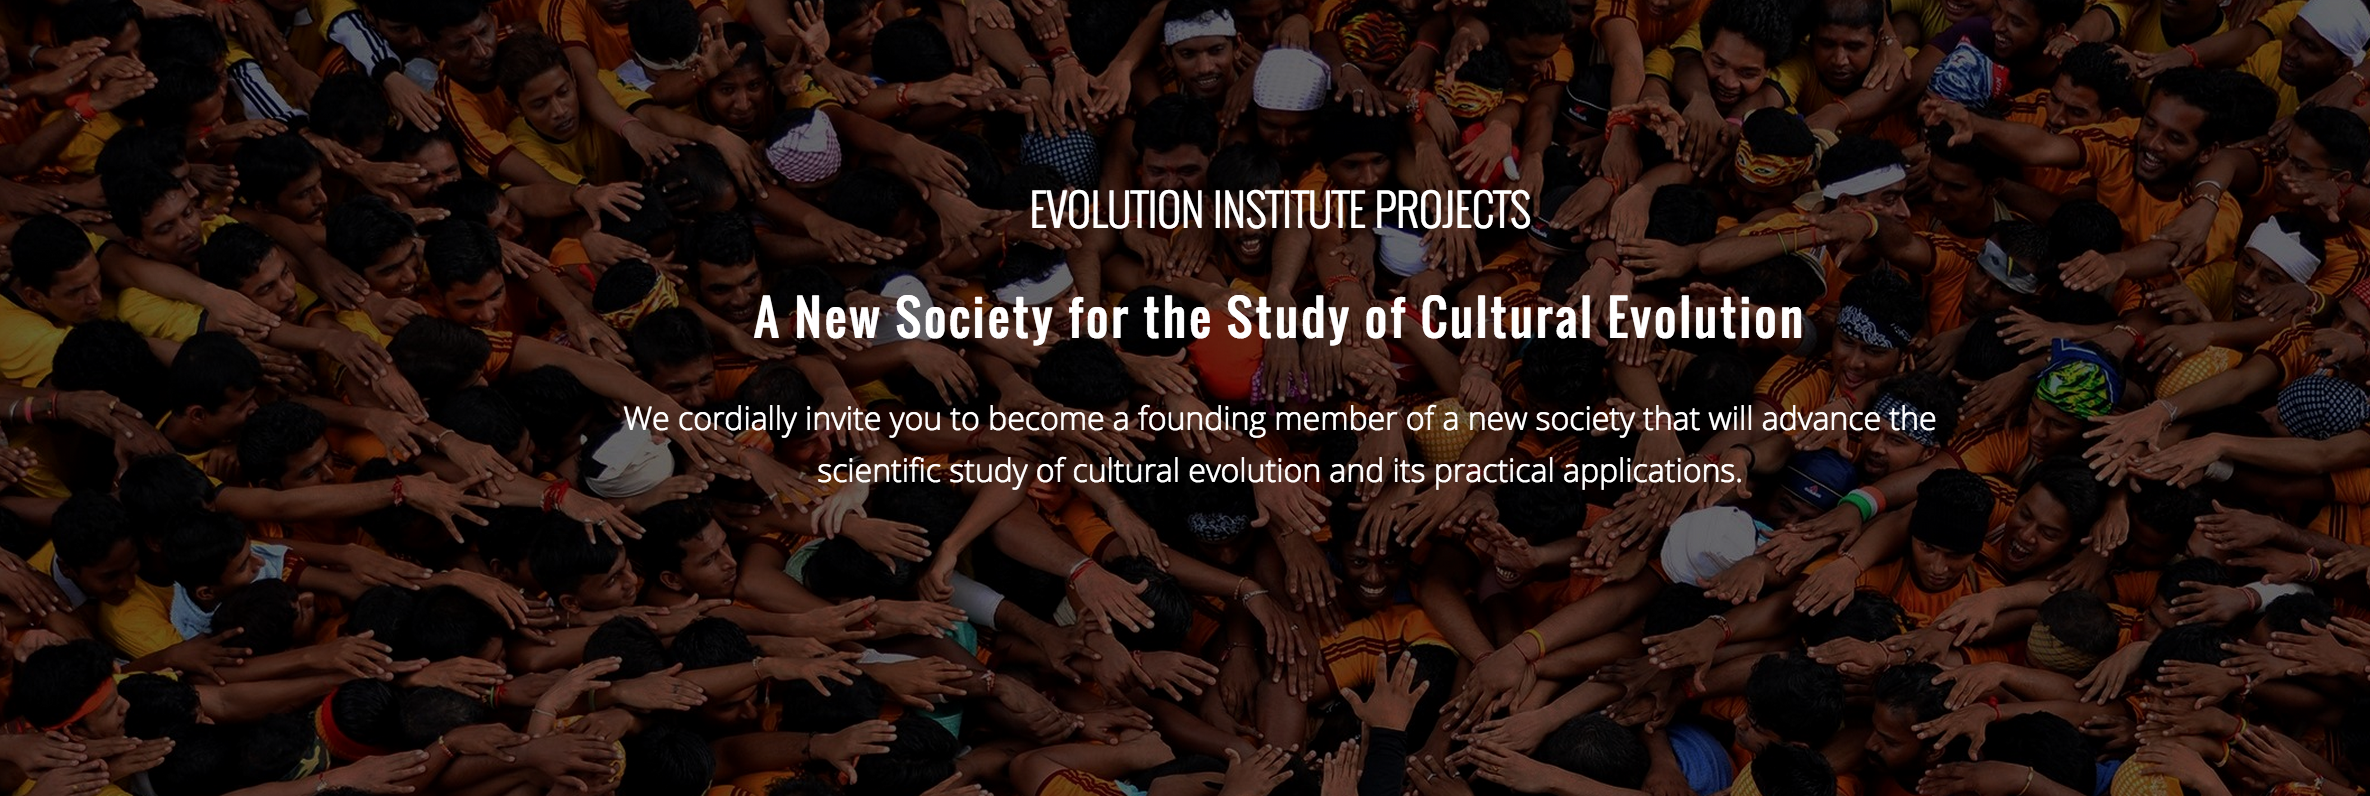 What Are The Grand Challenges For Cultural Evolution?